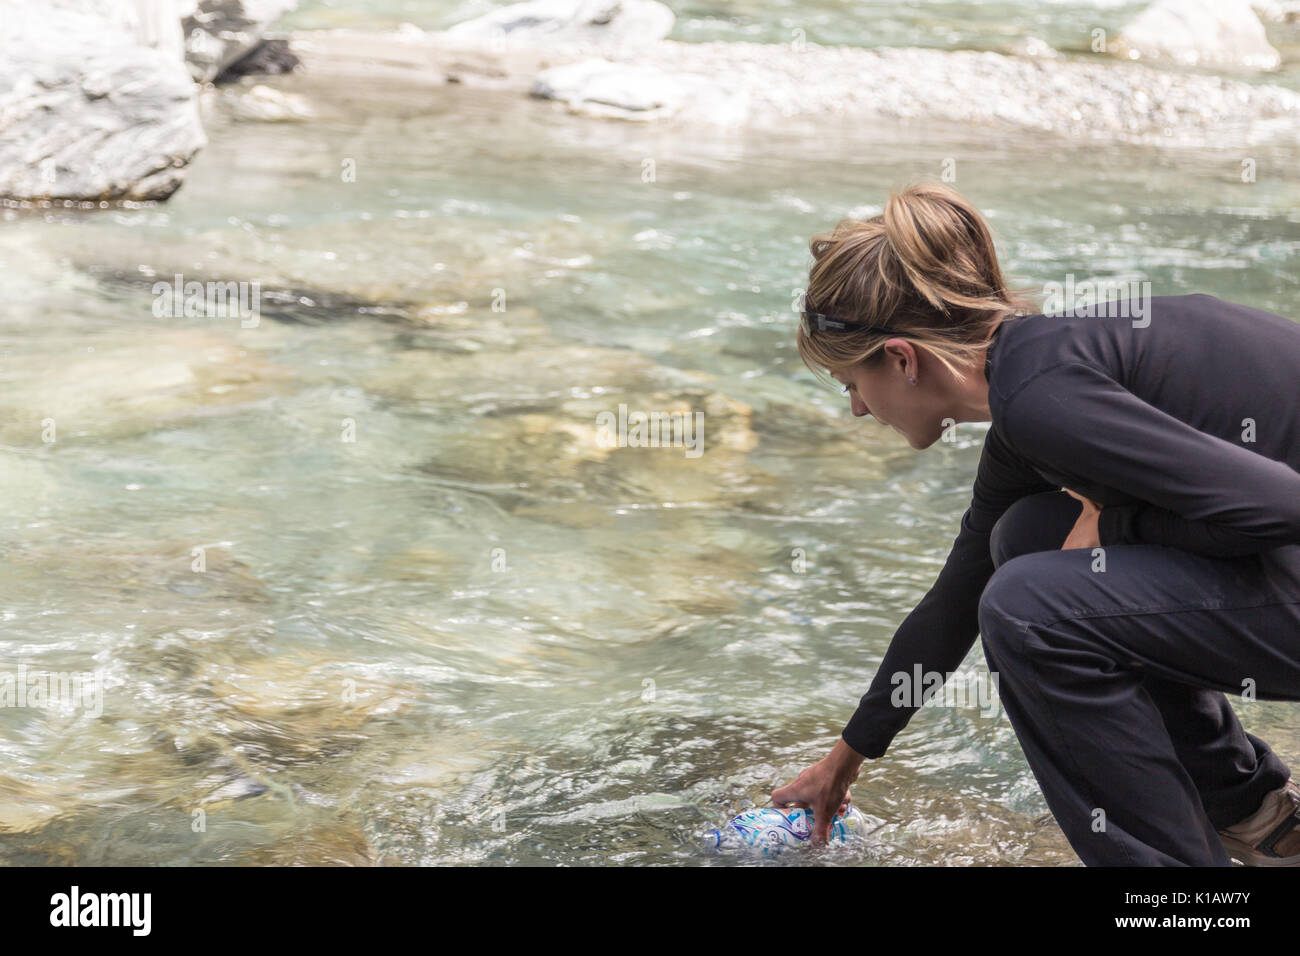 A woman or girl fills a water bottle from a crystal clear river or stream in New Zealand - Stock Image